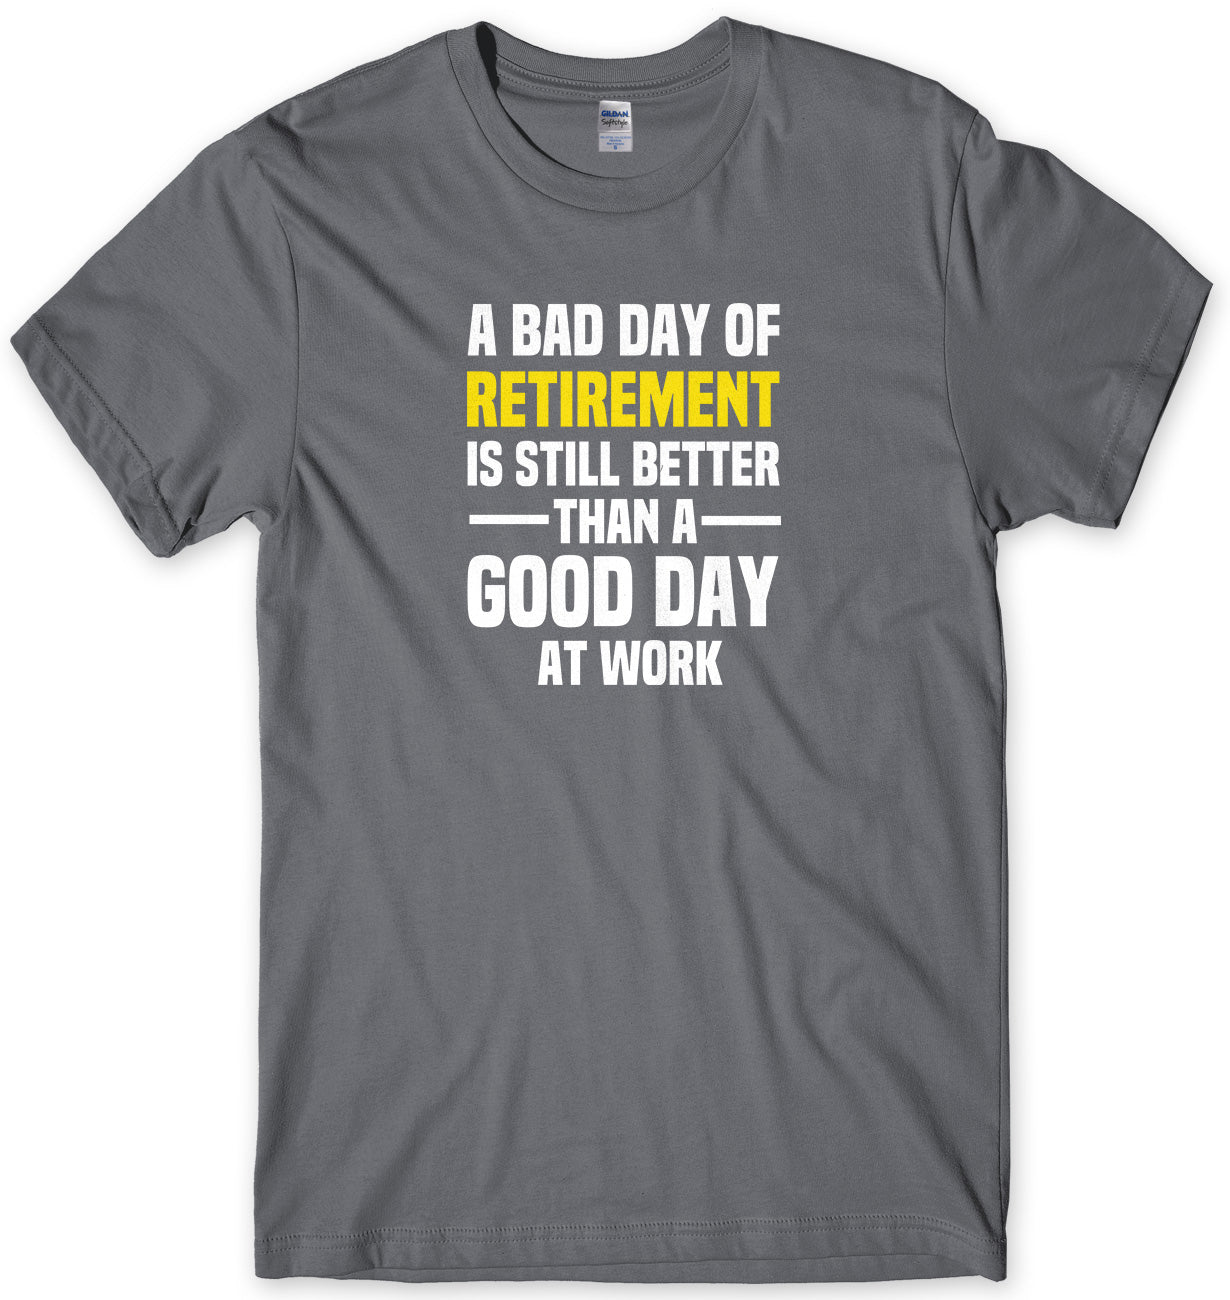 A BAD DAY OF RETIREMENT IS STILL BETTER THAN A GOOD DAY AT WORK MENS FUNNY SLOGAN UNISEX T-SHIRT - StreetSide Surgeons